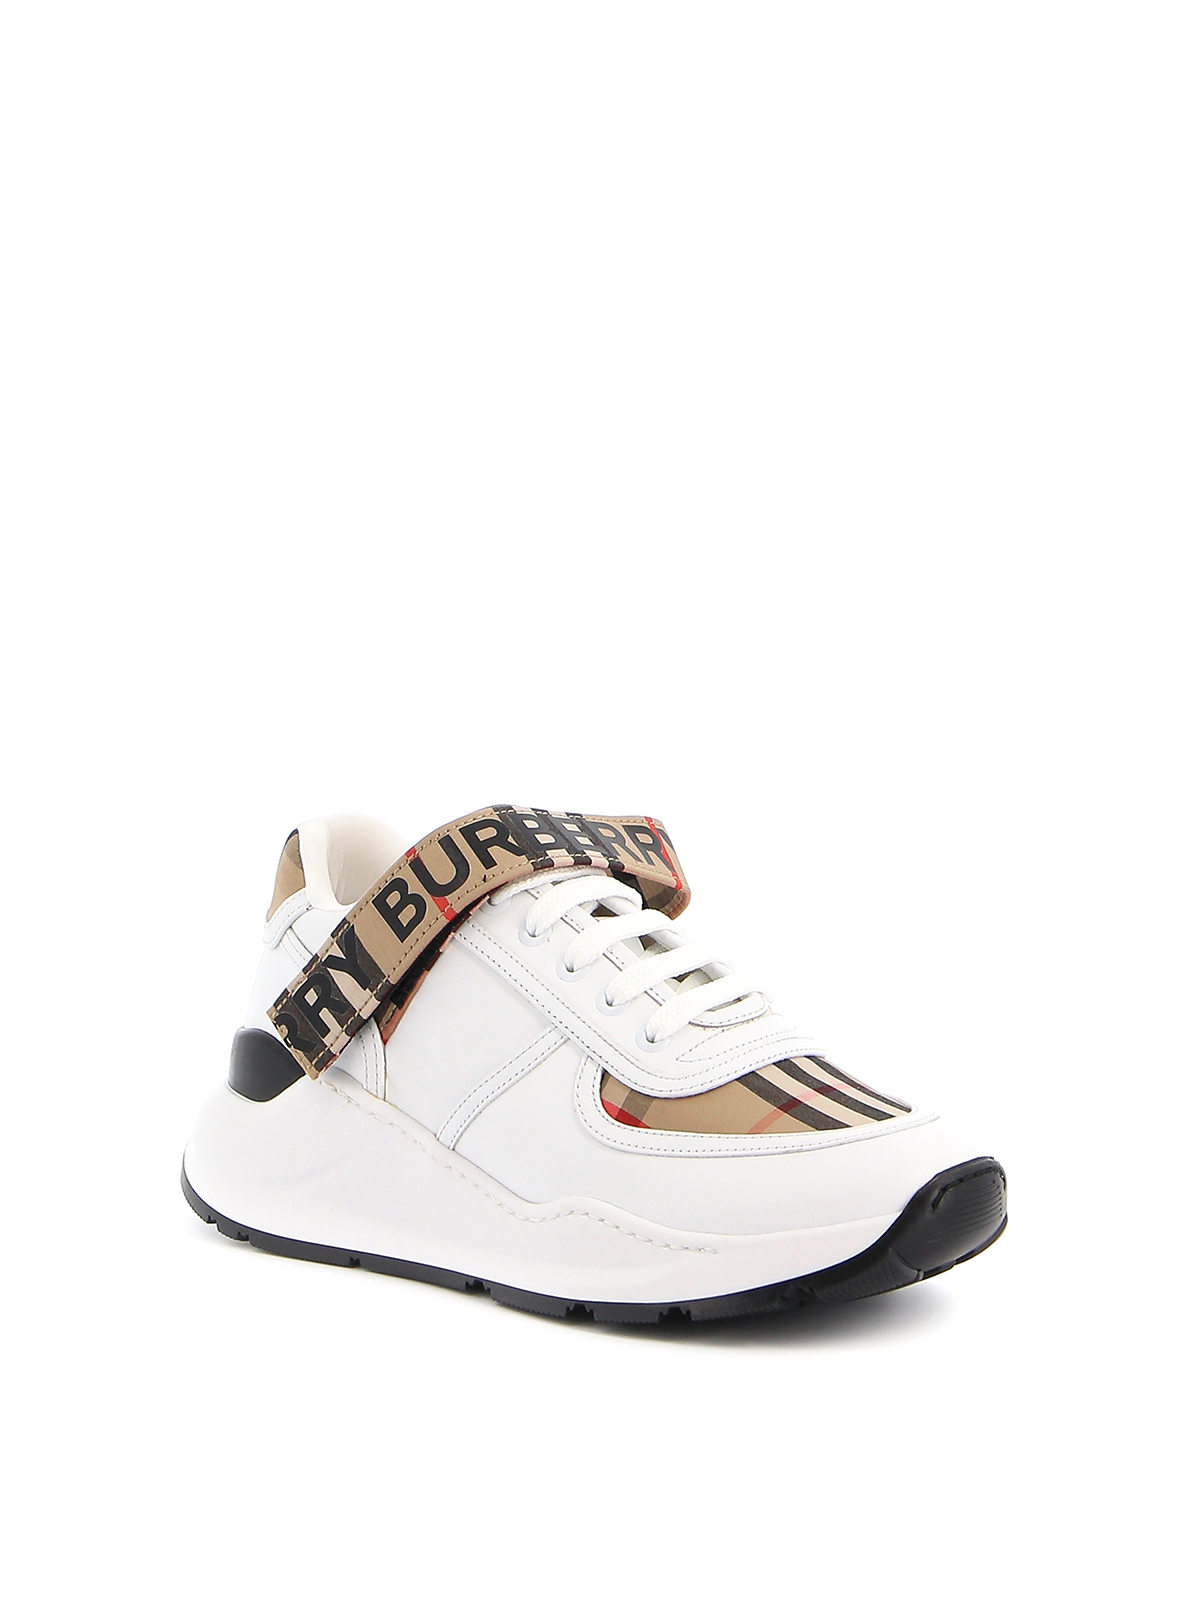 sneakers - trainers - 8025543 | iKRIX